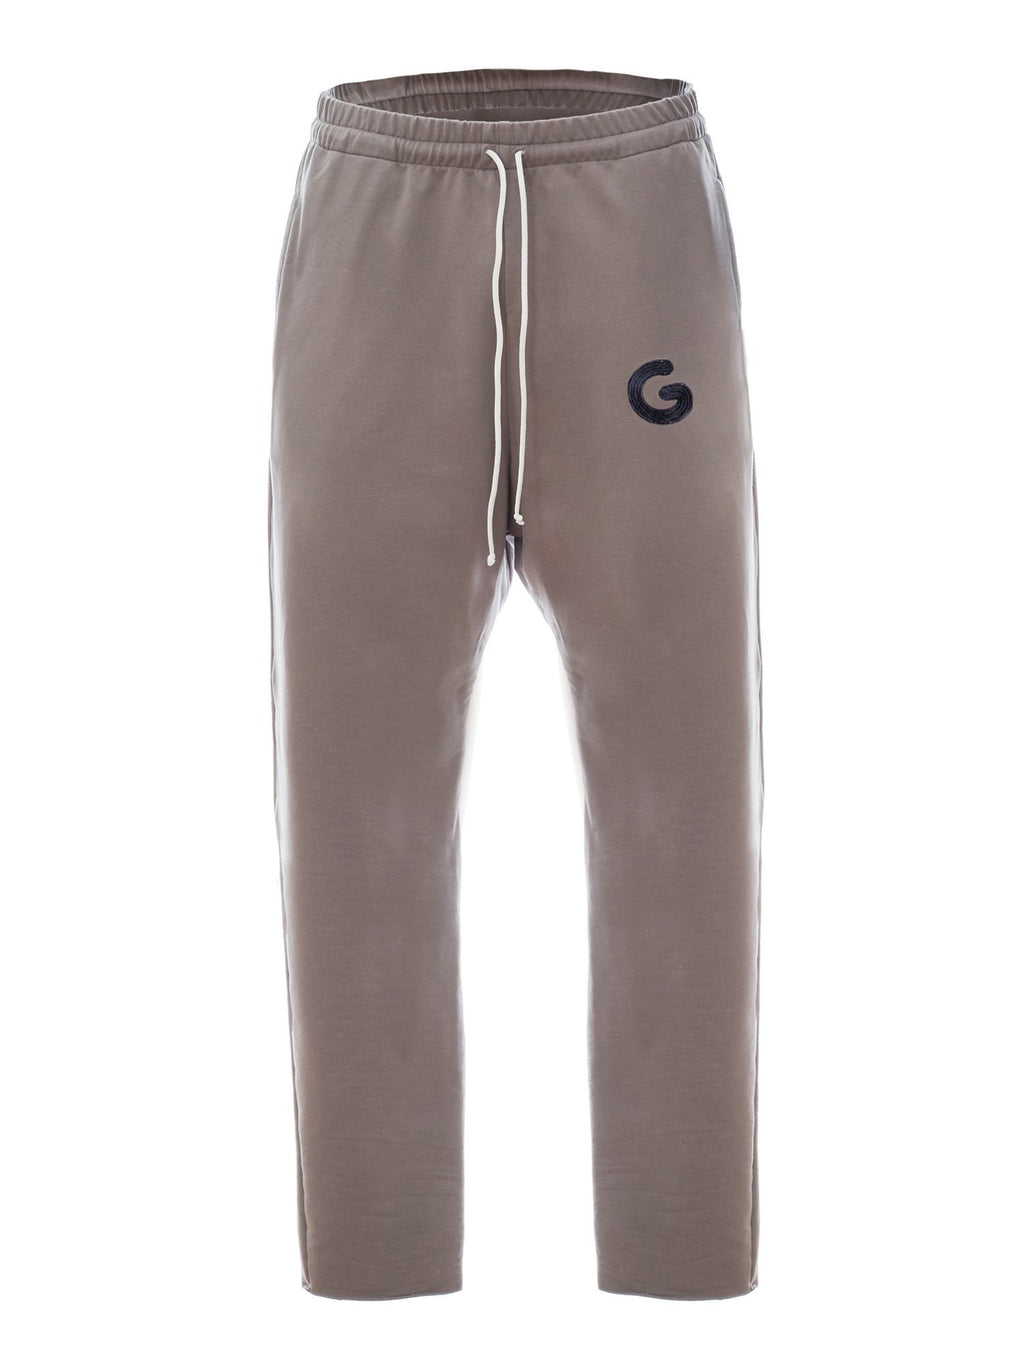 TheG Essential Joggers // paloma